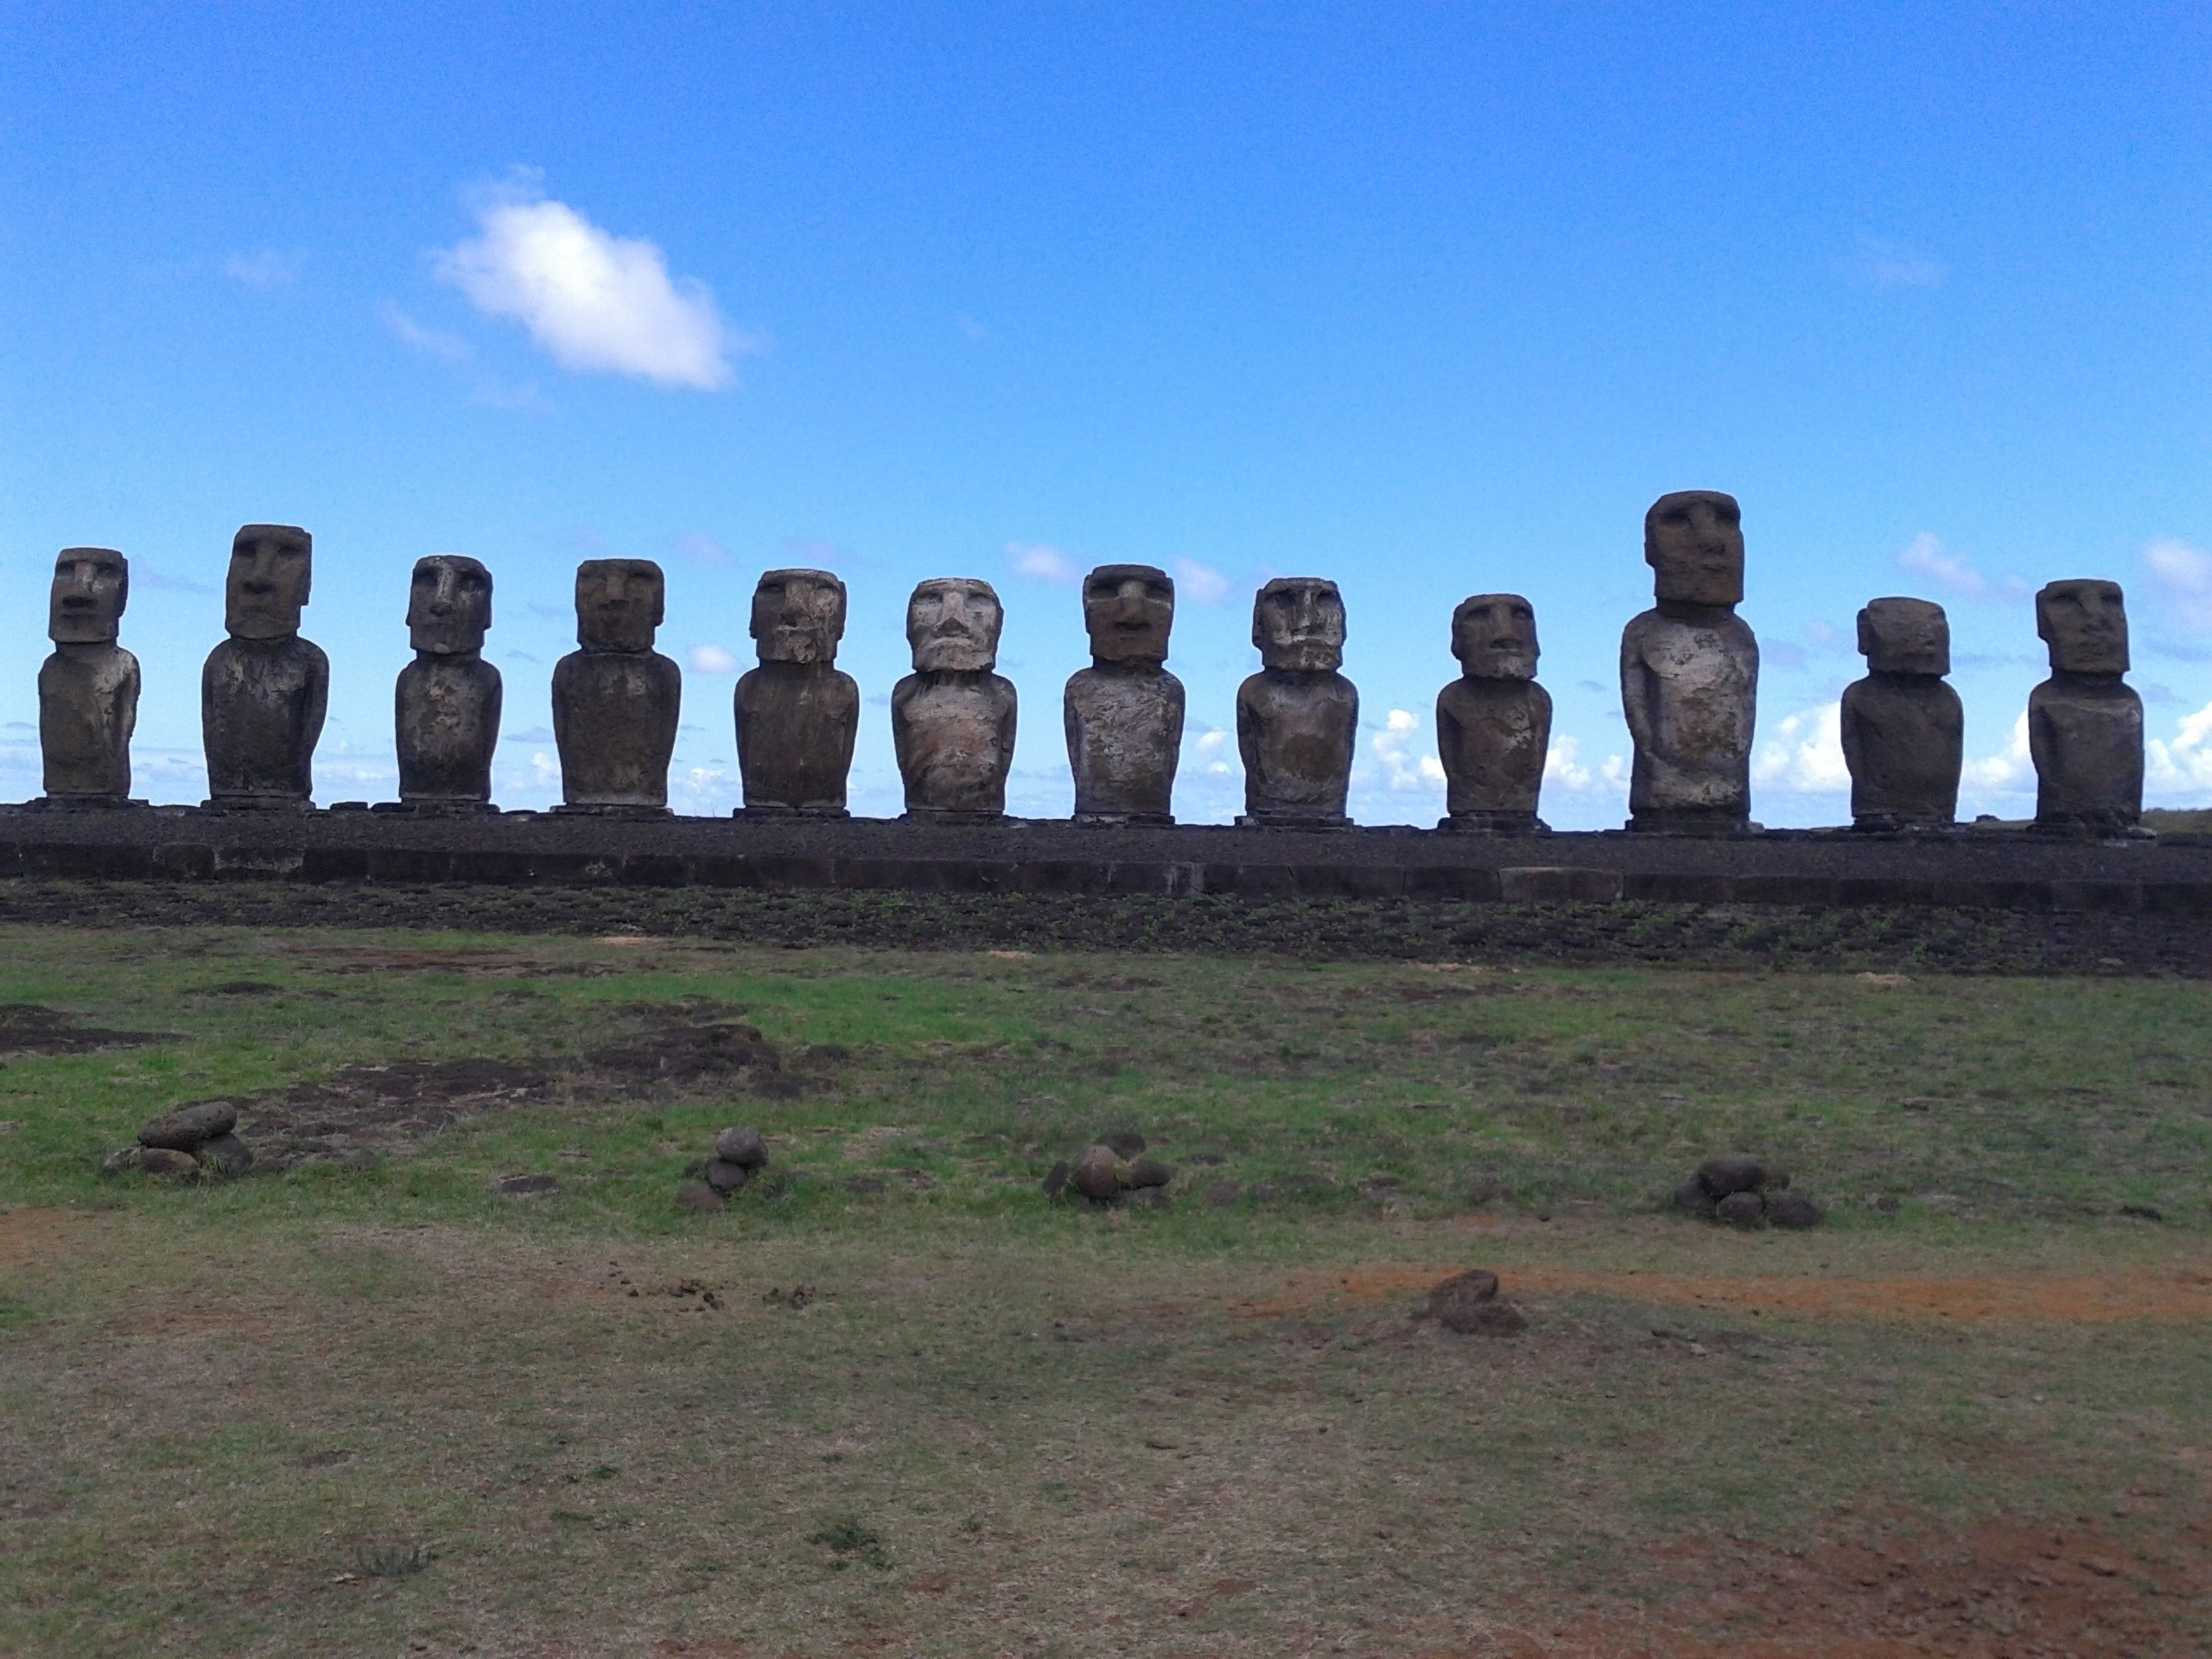 Res: 2560x1920, moai in easter island